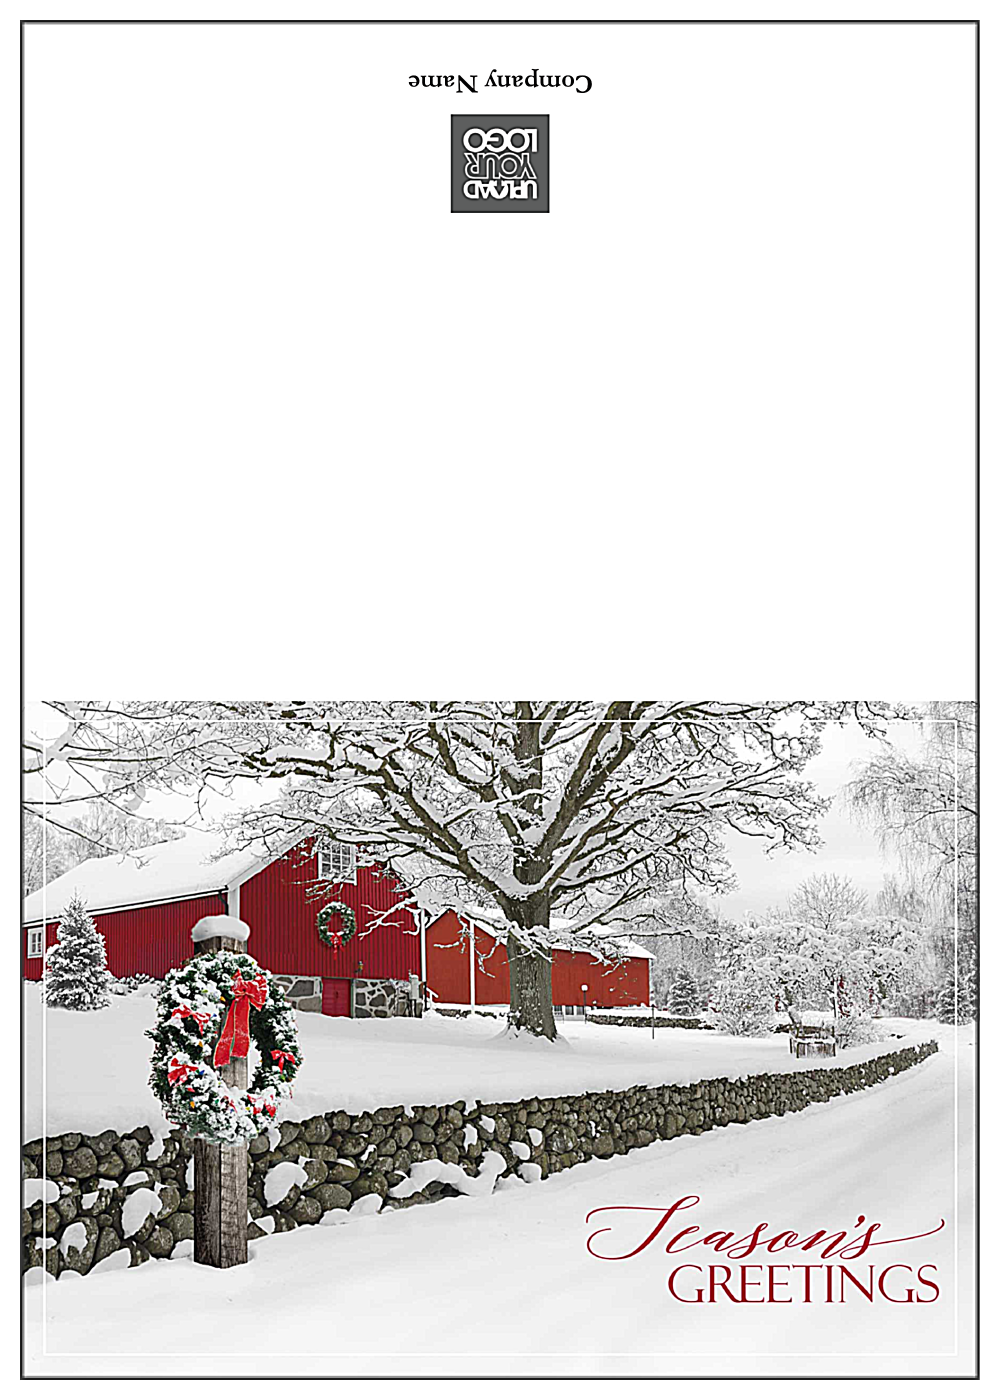 Snowy Season's Greetings front - Greeting Cards Maker